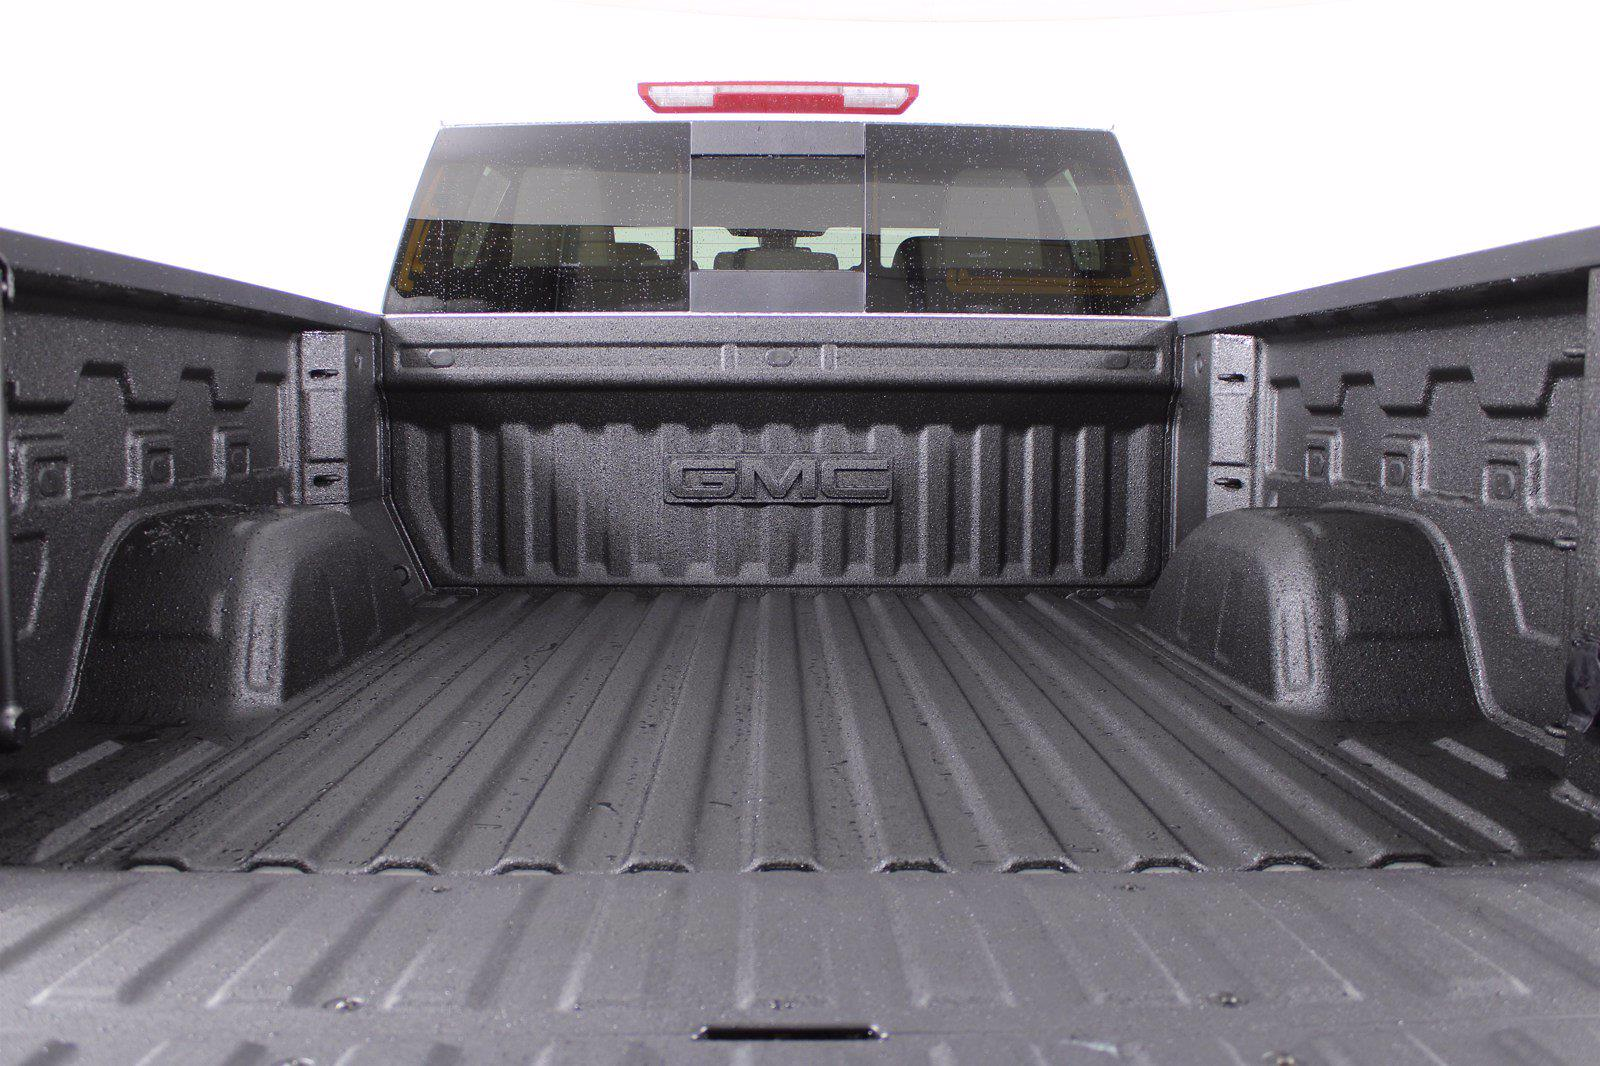 2021 GMC Sierra 1500 Crew Cab 4x4, Pickup #D410585 - photo 8